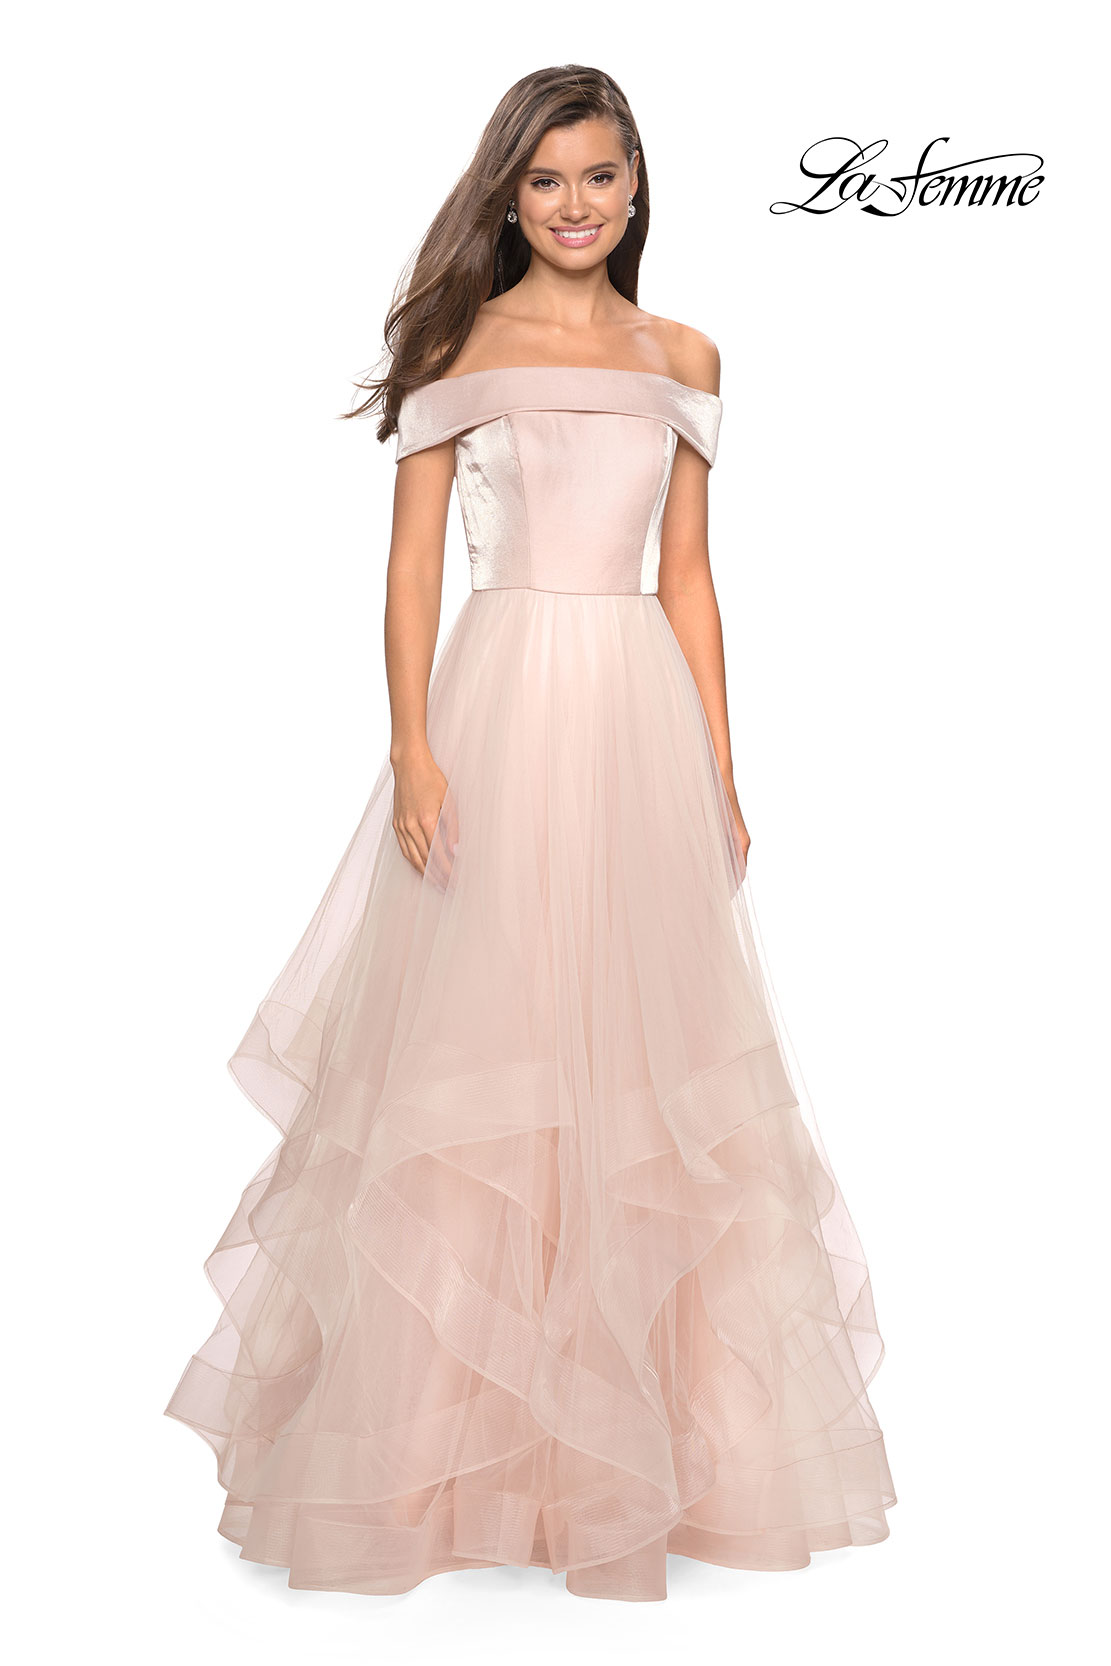 8a3ad8102b2 Picture of  Elegant Off the Shoulder Tulle Layered Ball Gown